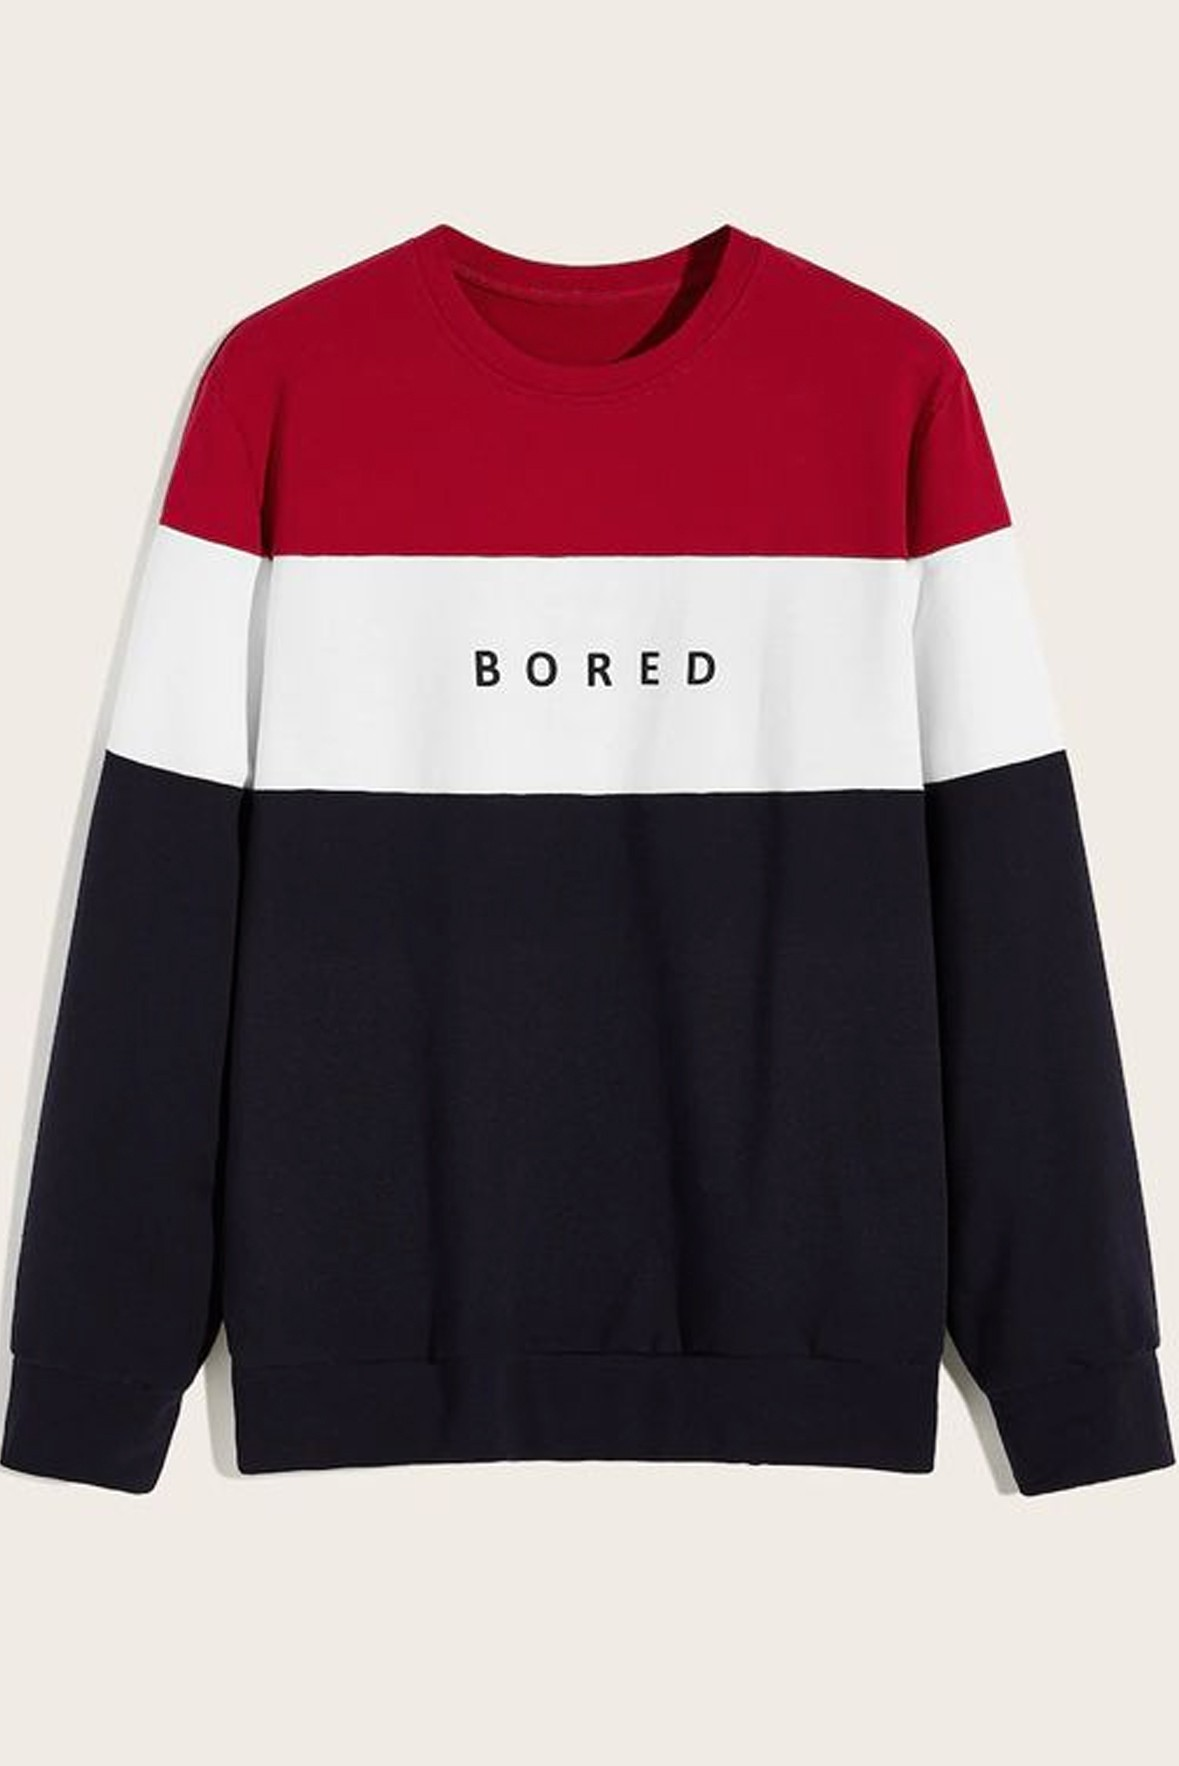 Men Bored Red & Black Sweatshirt